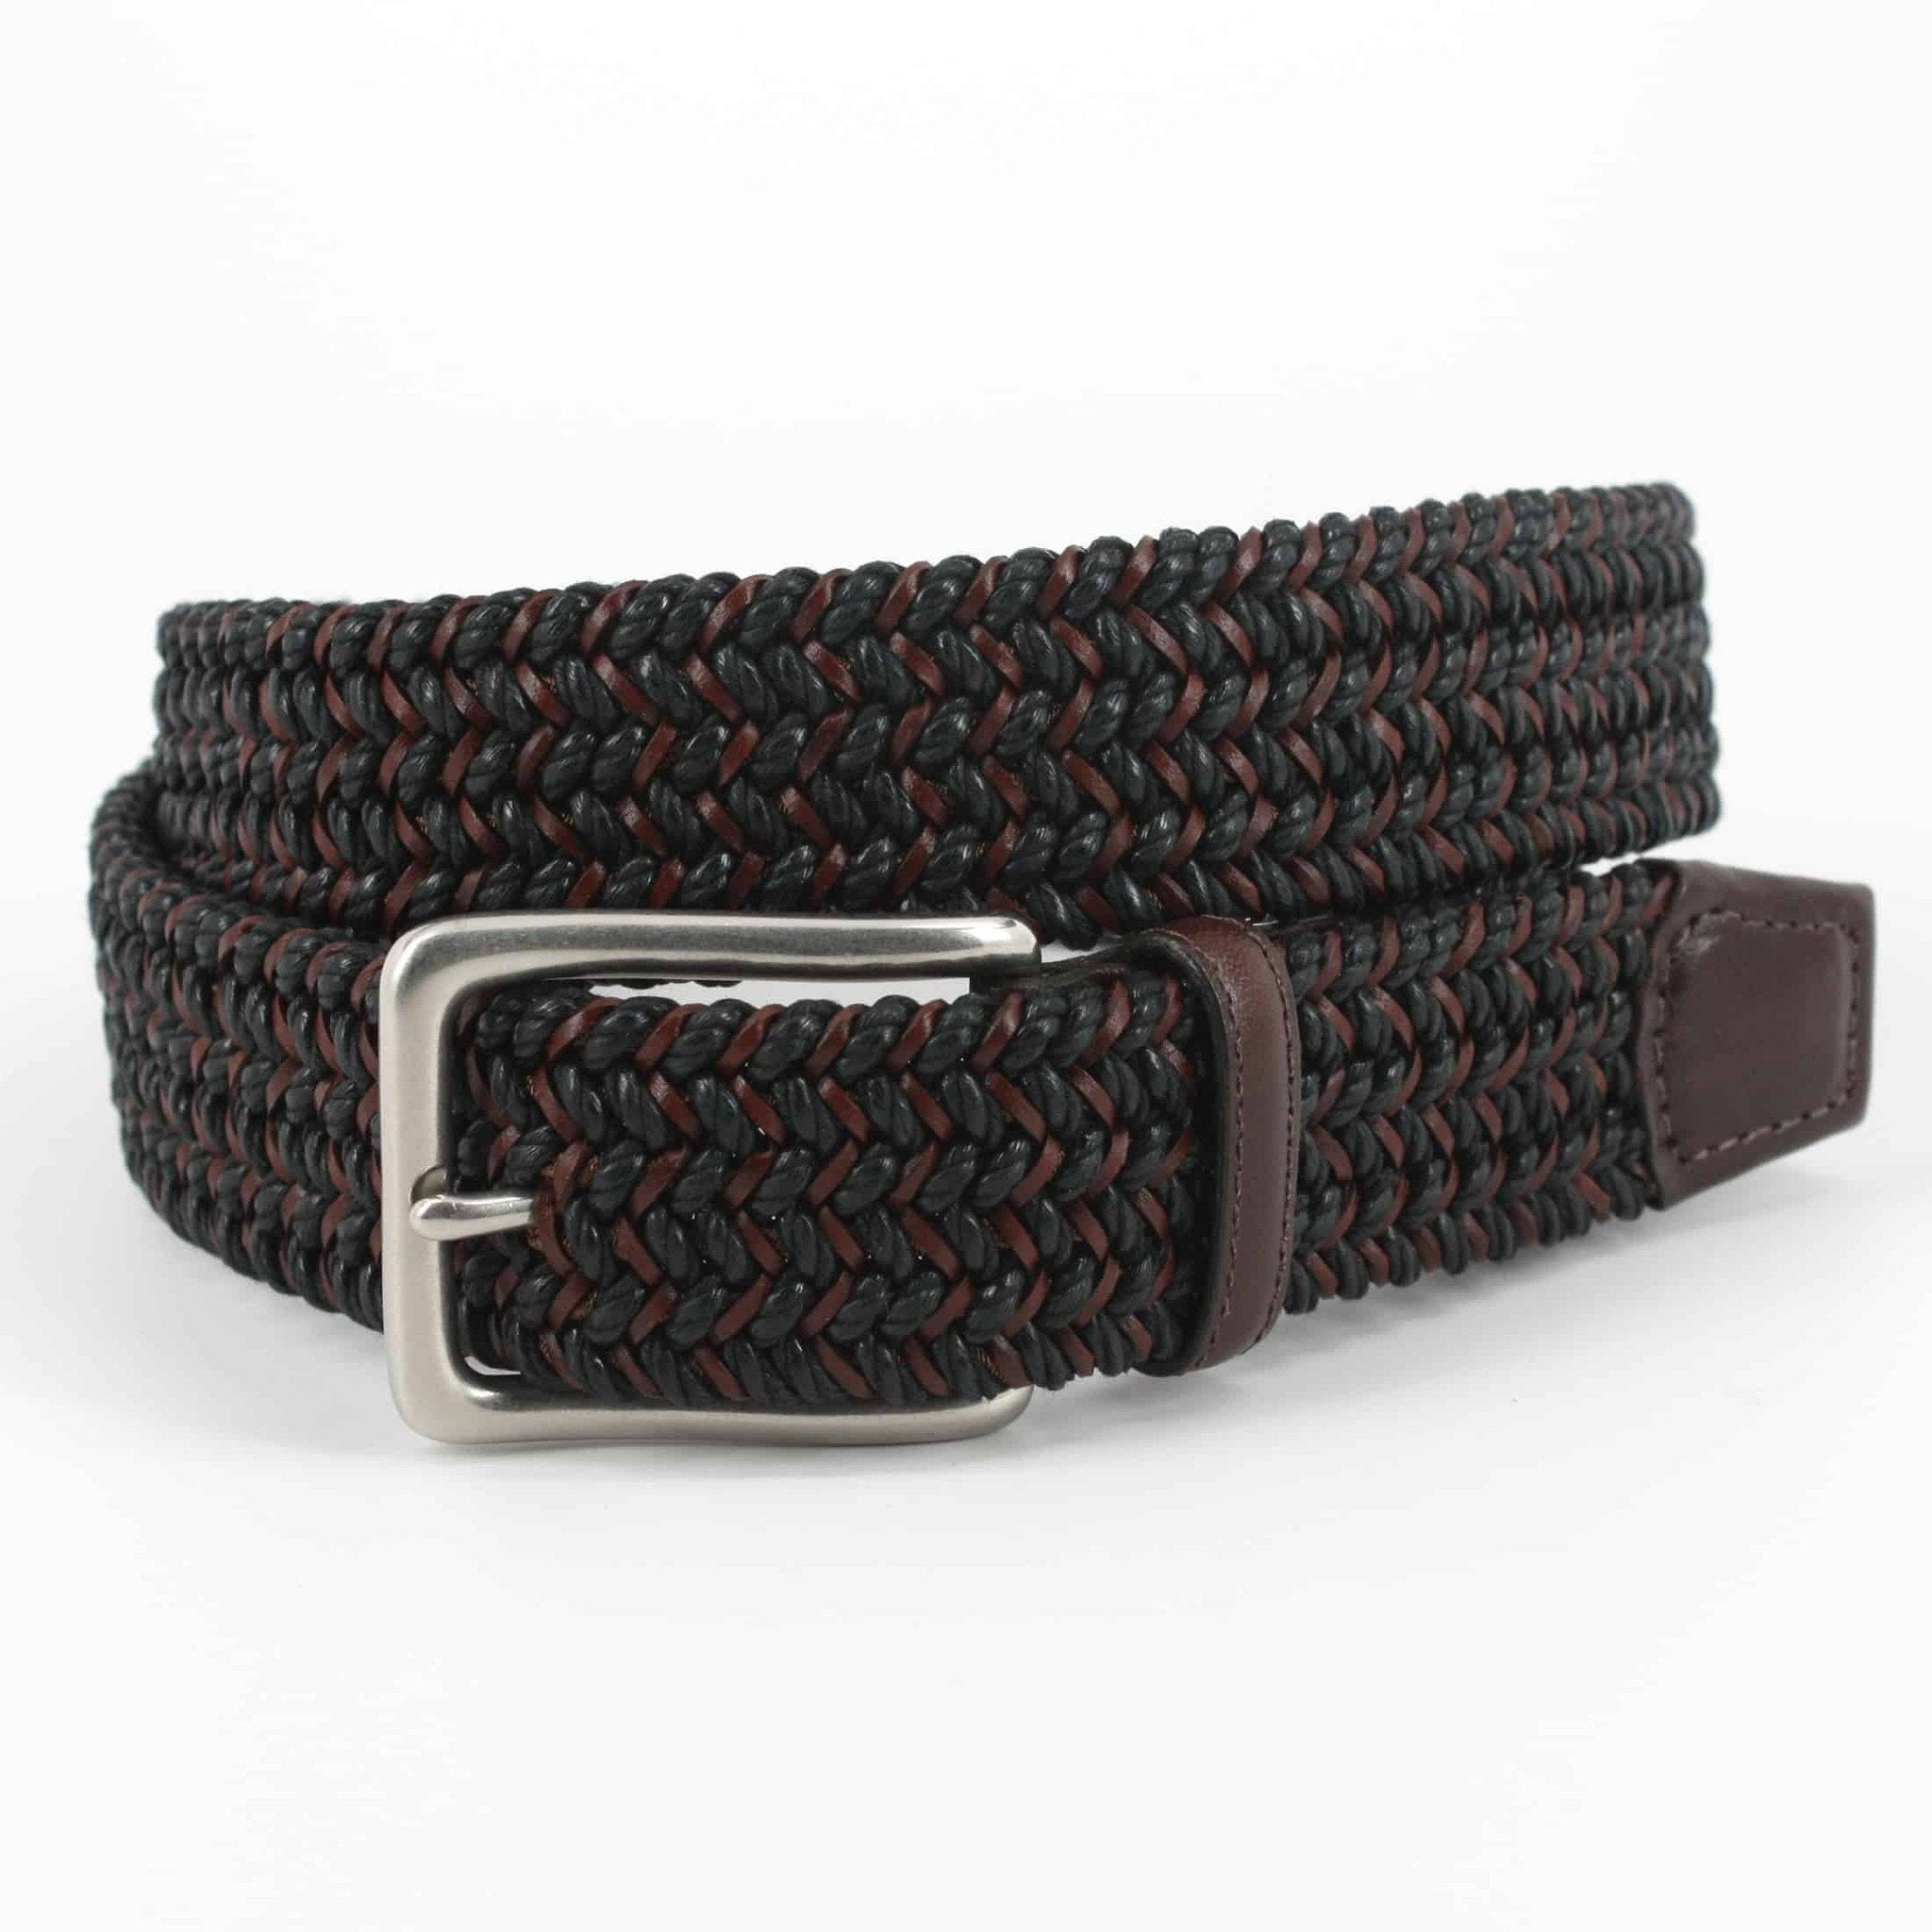 Italian Woven Cotton & Leather Belt - Black/Brown,BELT,GentRow.com, | GentRow.com